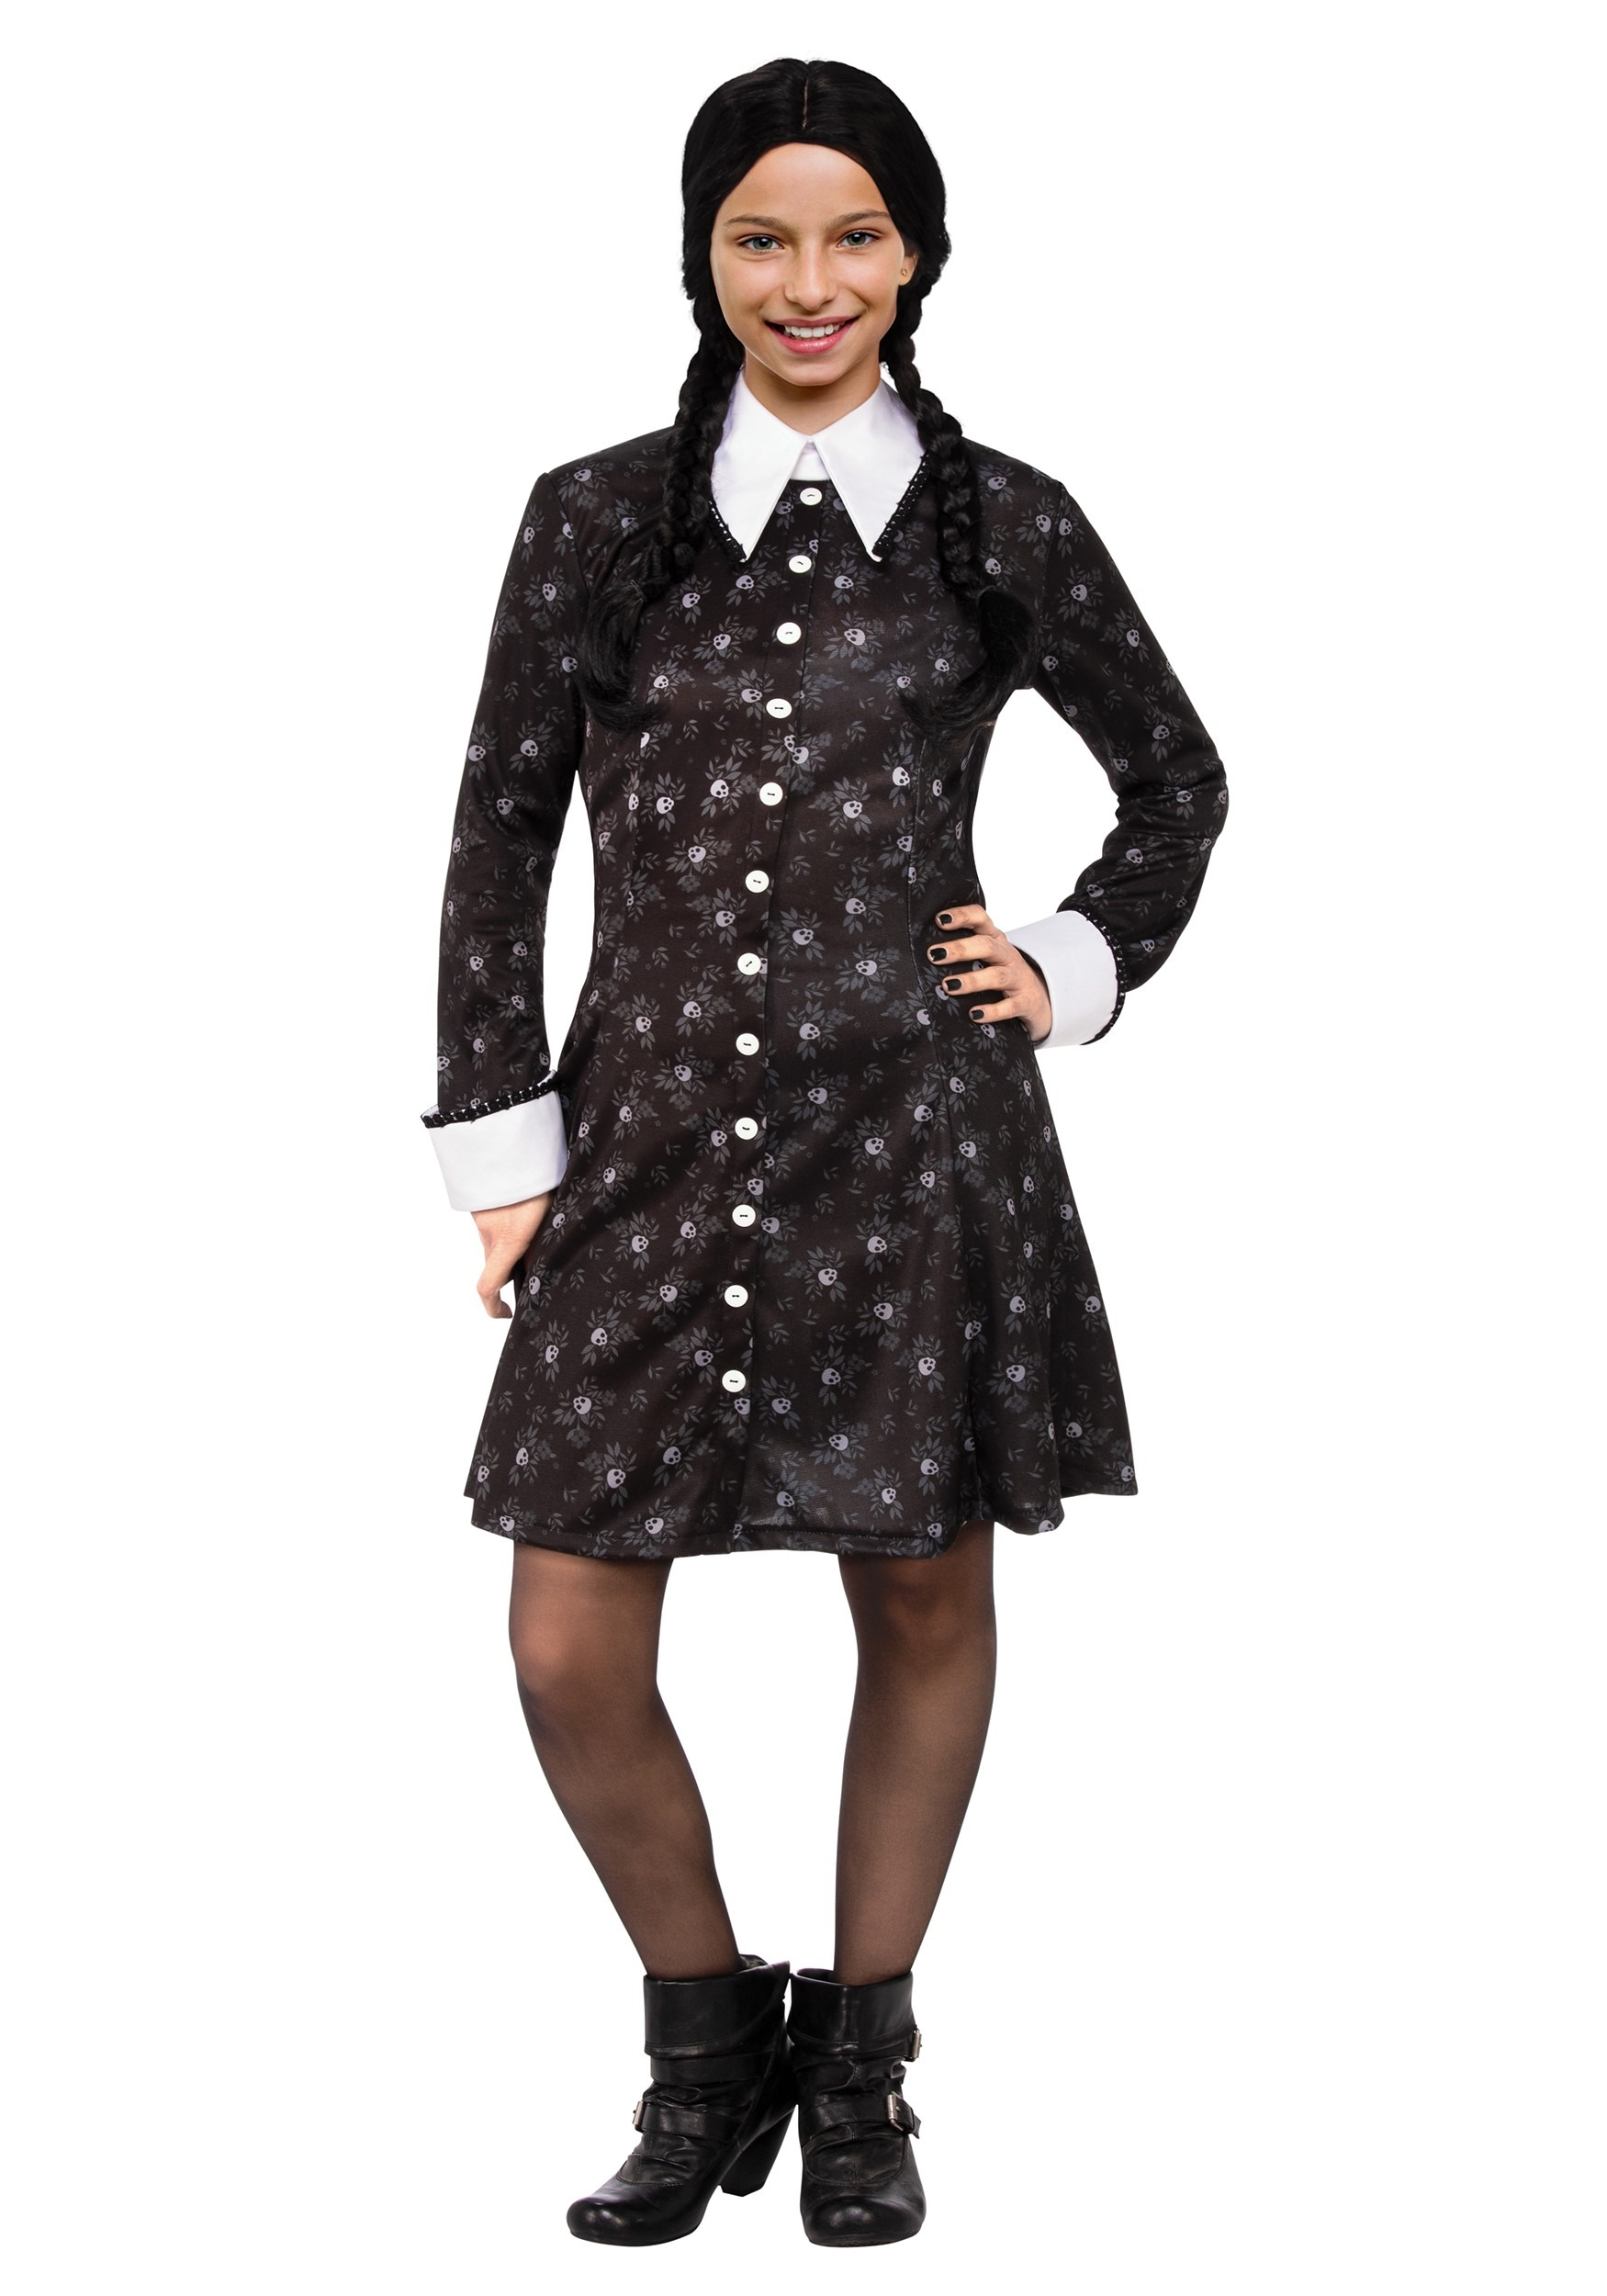 Addams Family Wednesday Costume for Girls